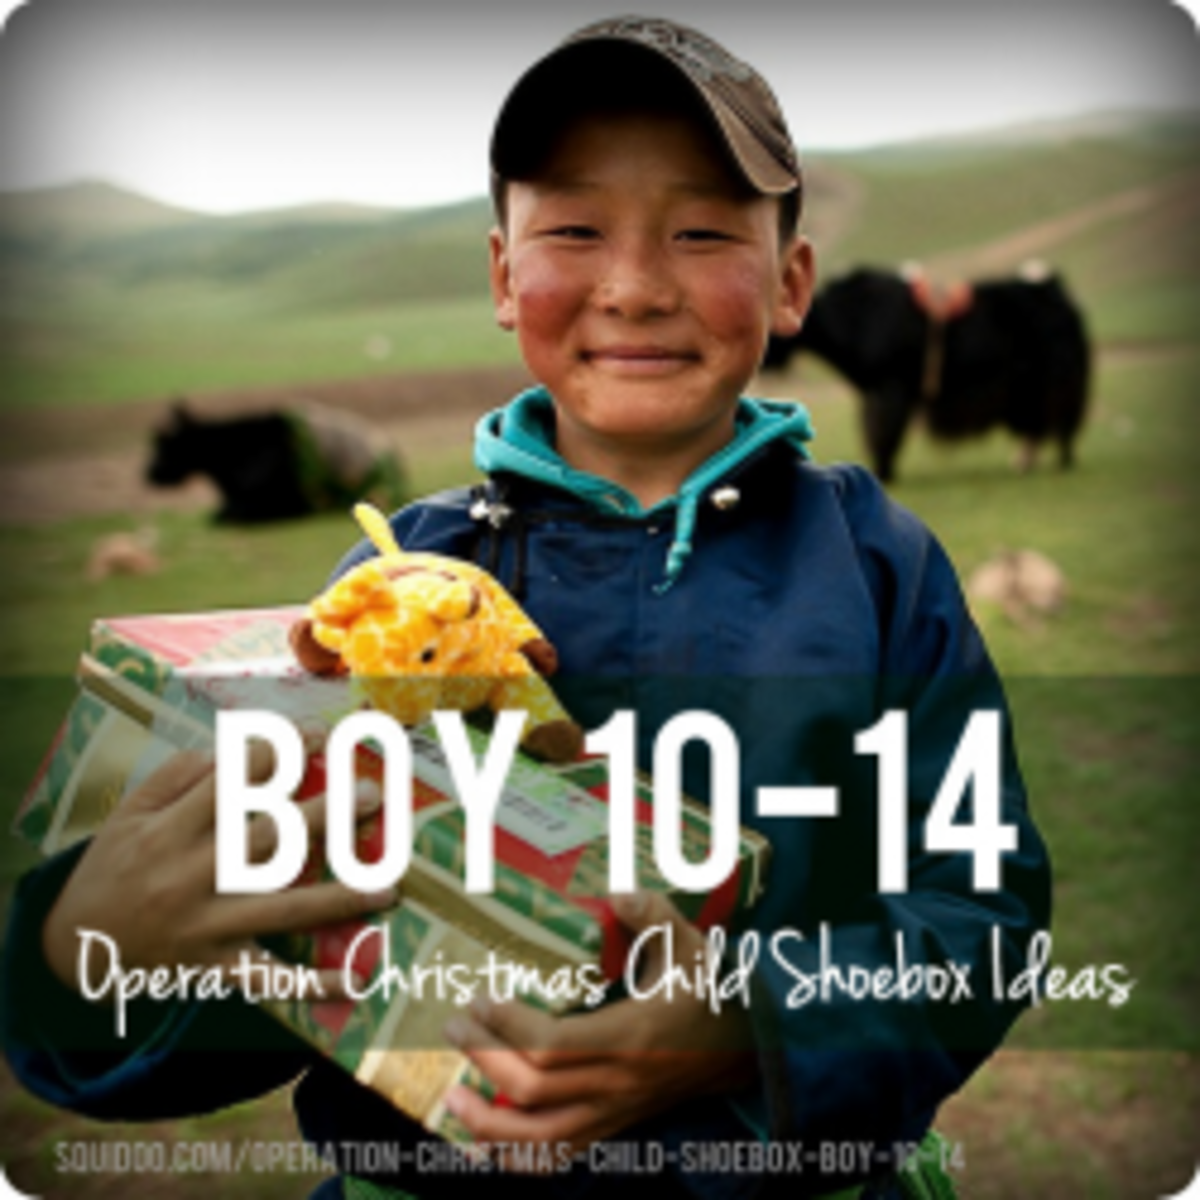 Operation Christmas Child Shoebox Ideas for Boys Aged 10-14